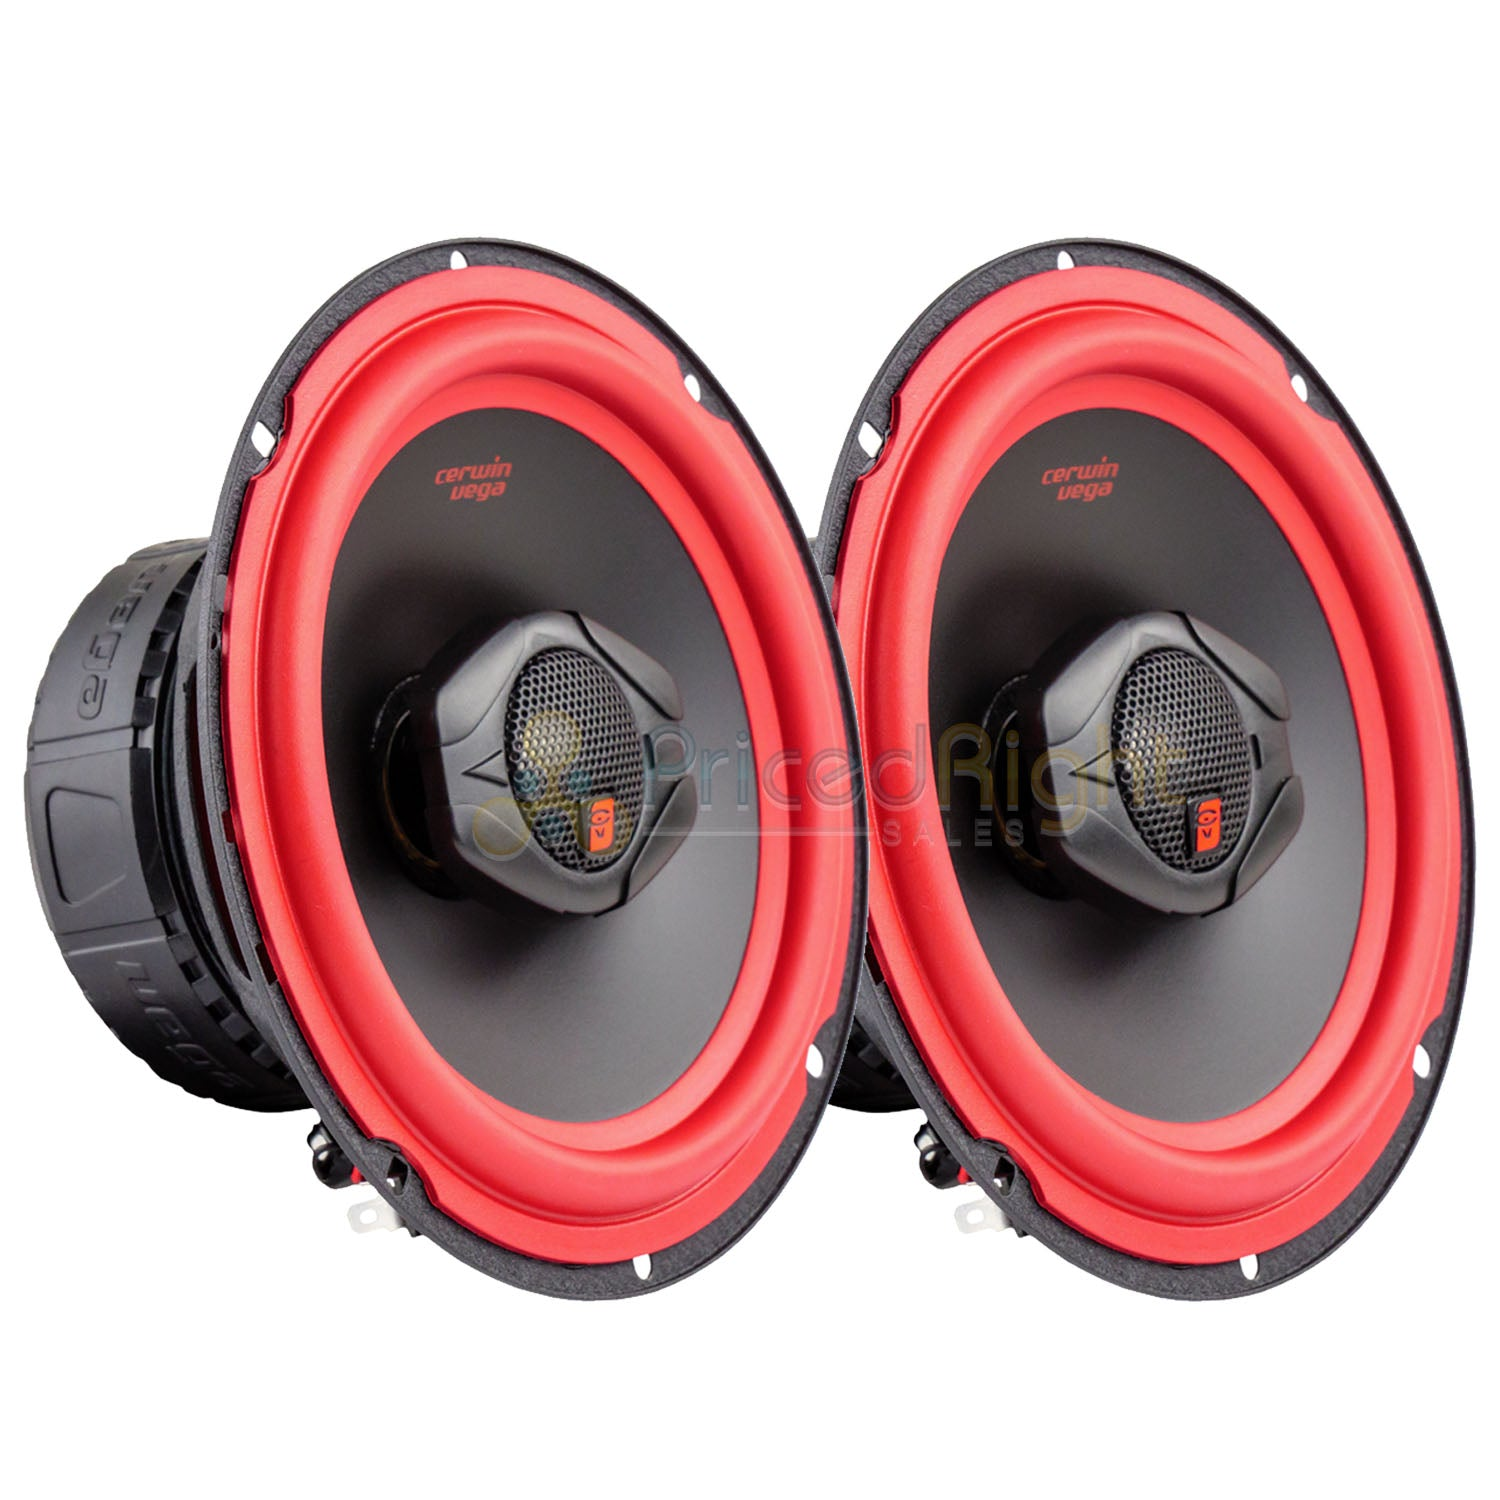 "Cerwin Vega V465 6.5"" 2 Way Coaxial Car Speakers Titanium Dome Tweeter Pair"